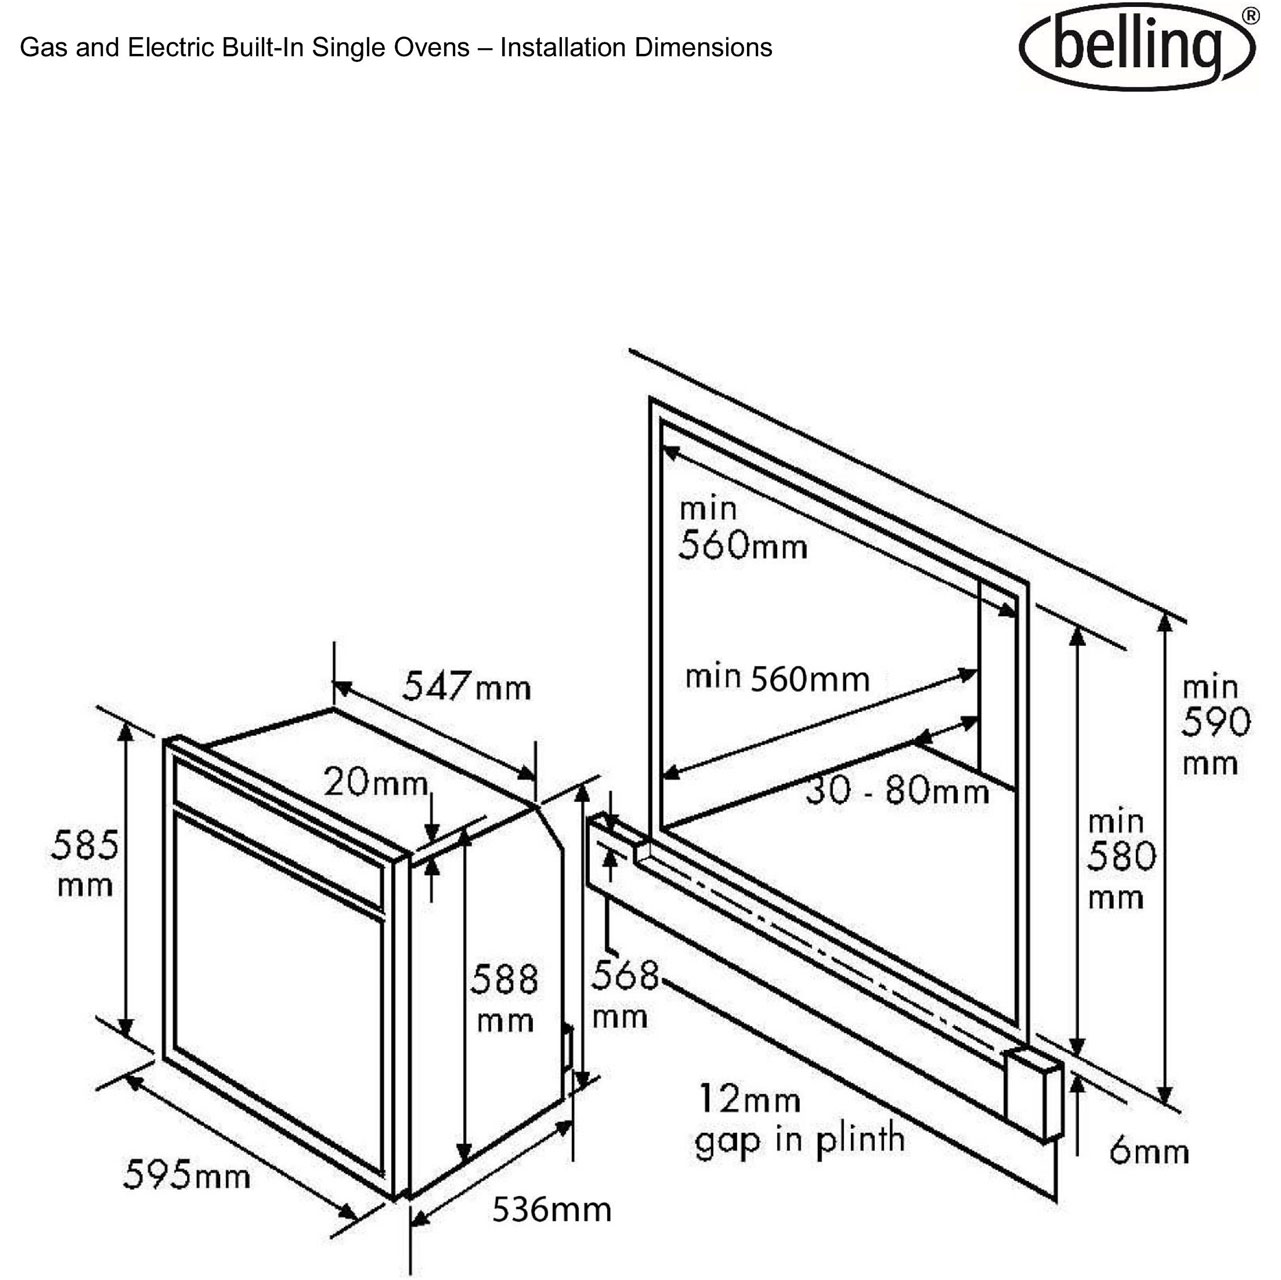 Bi60g Ss Belling Built In Gas Single Oven 48l Ge 300 Line Control Wiring Diagram